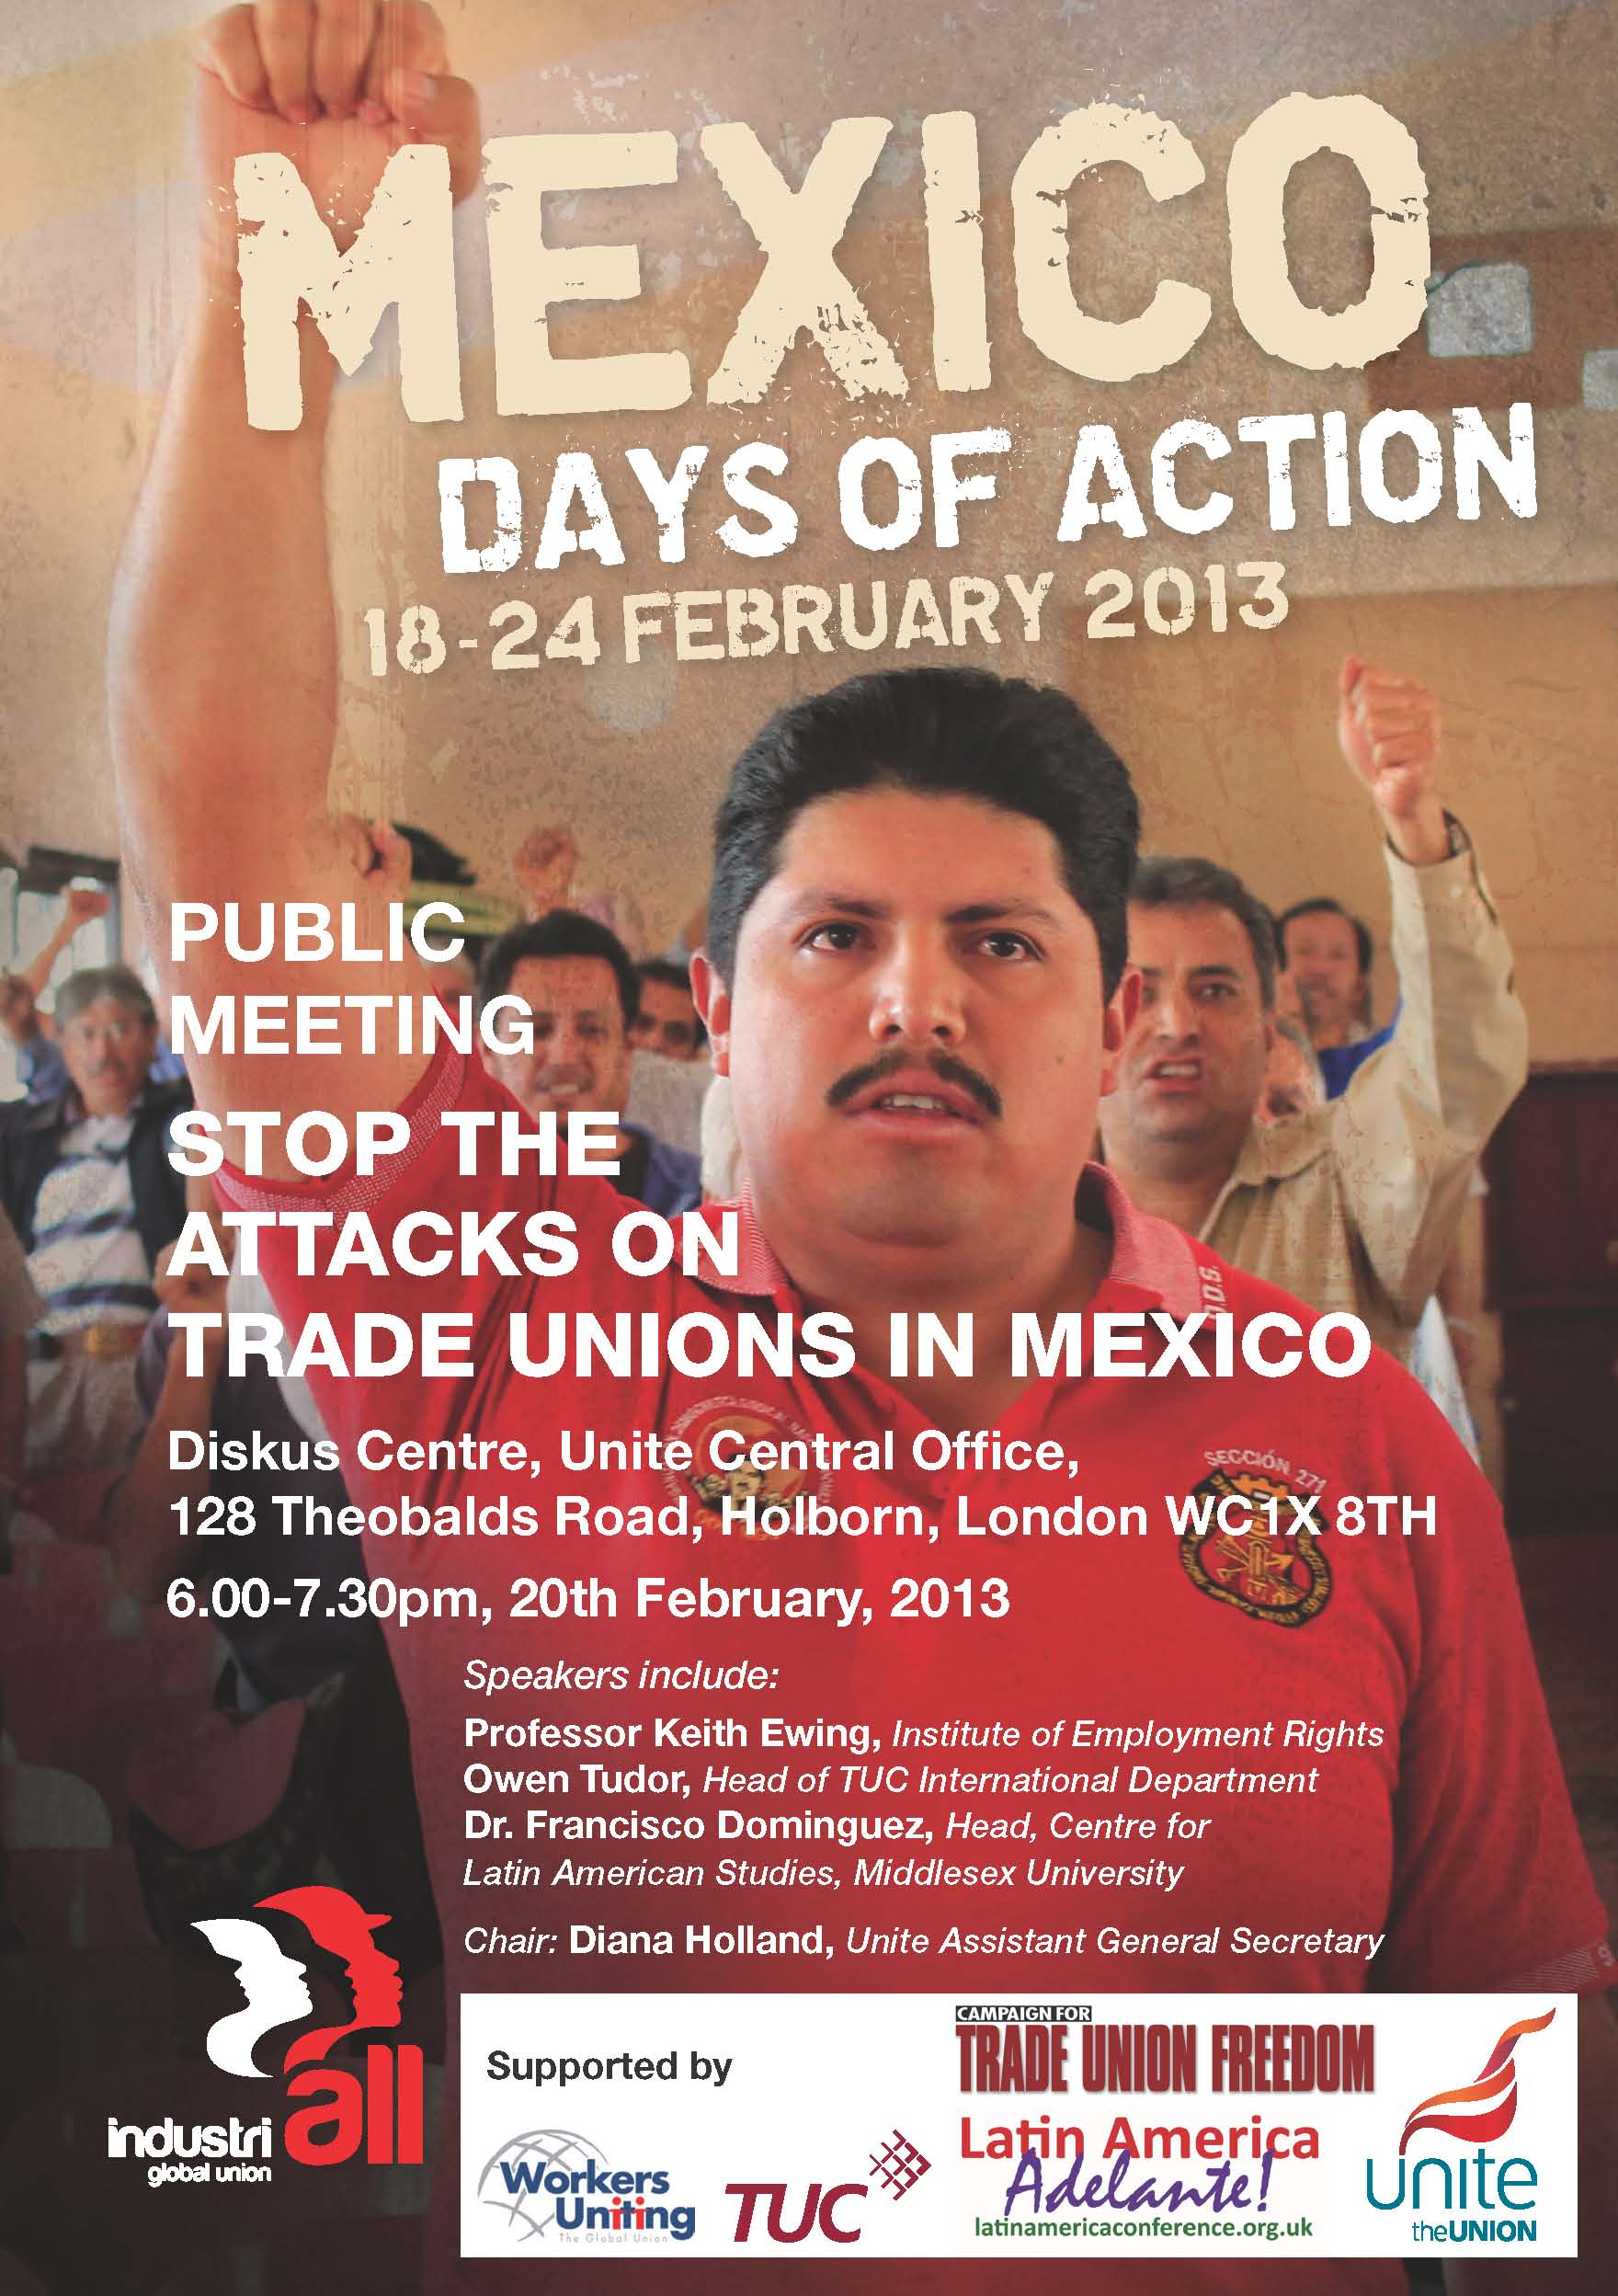 Mexico Days of Action